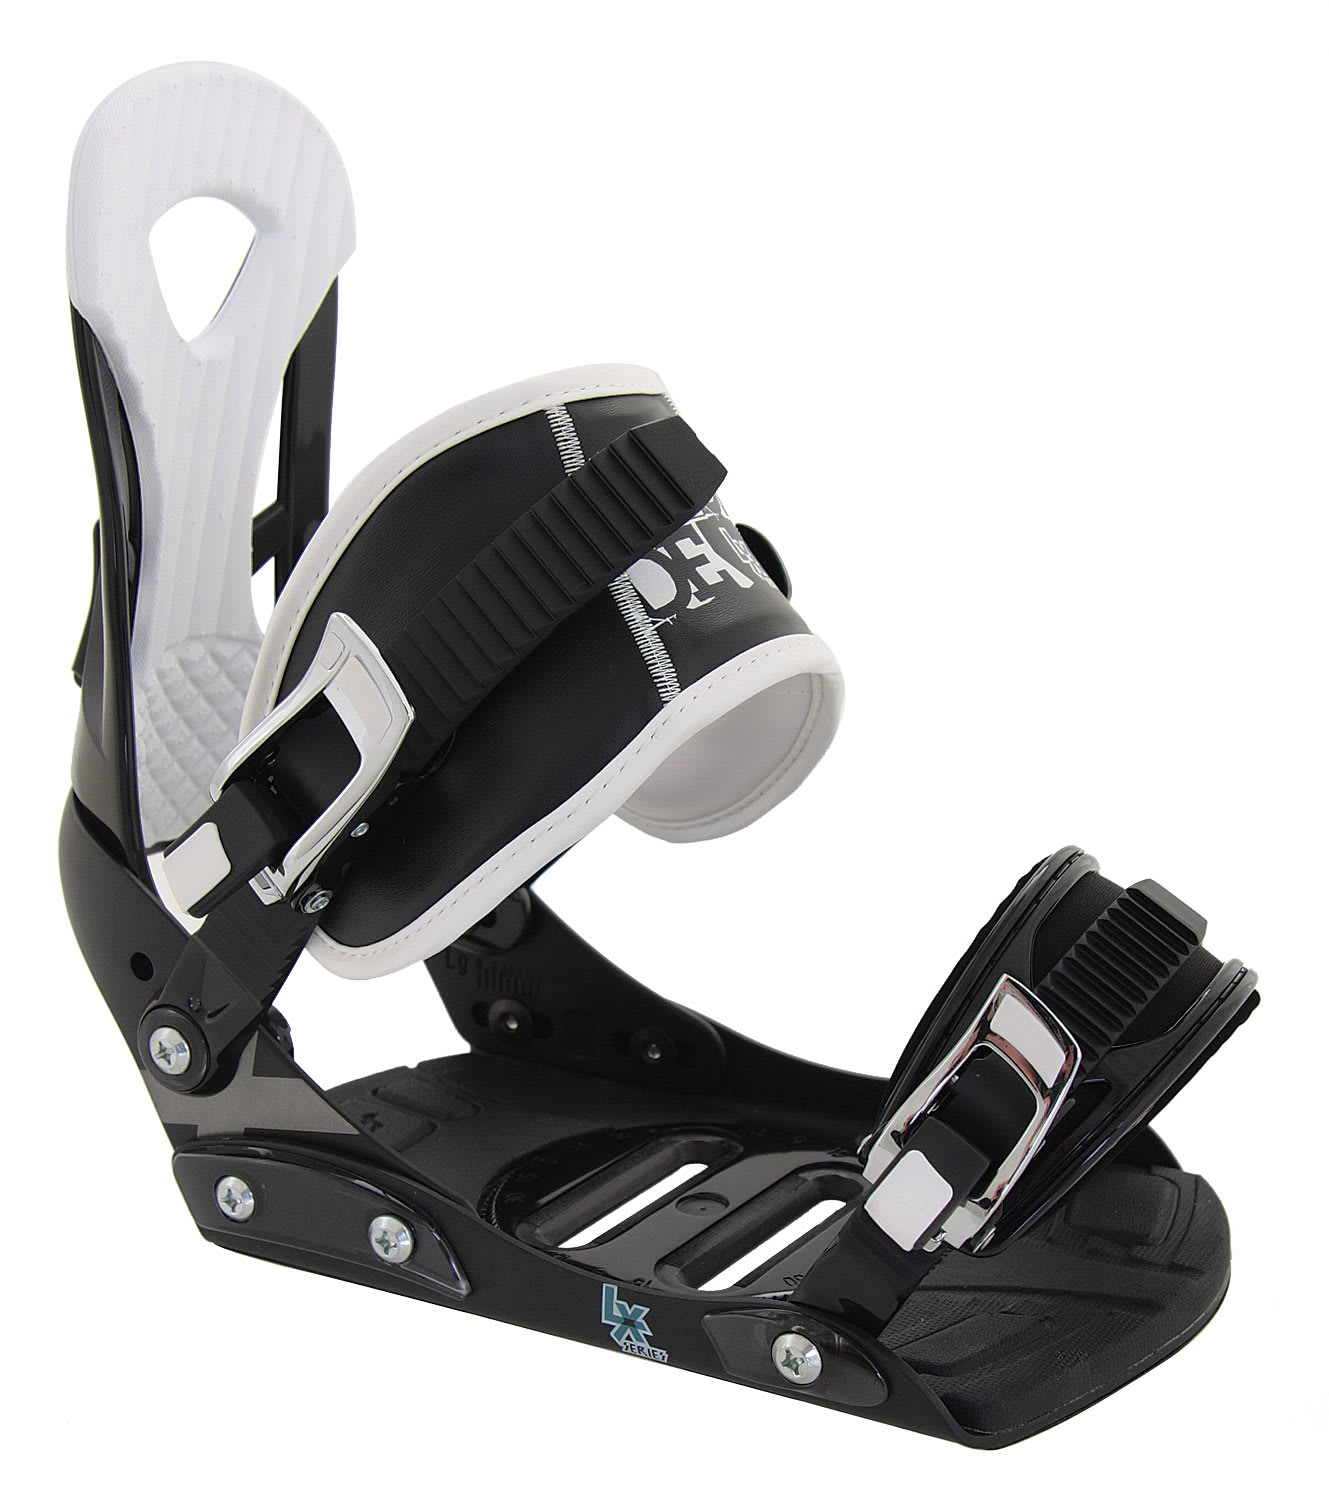 On Sale Ride LX Snowboard Bindings Up To 80% Off